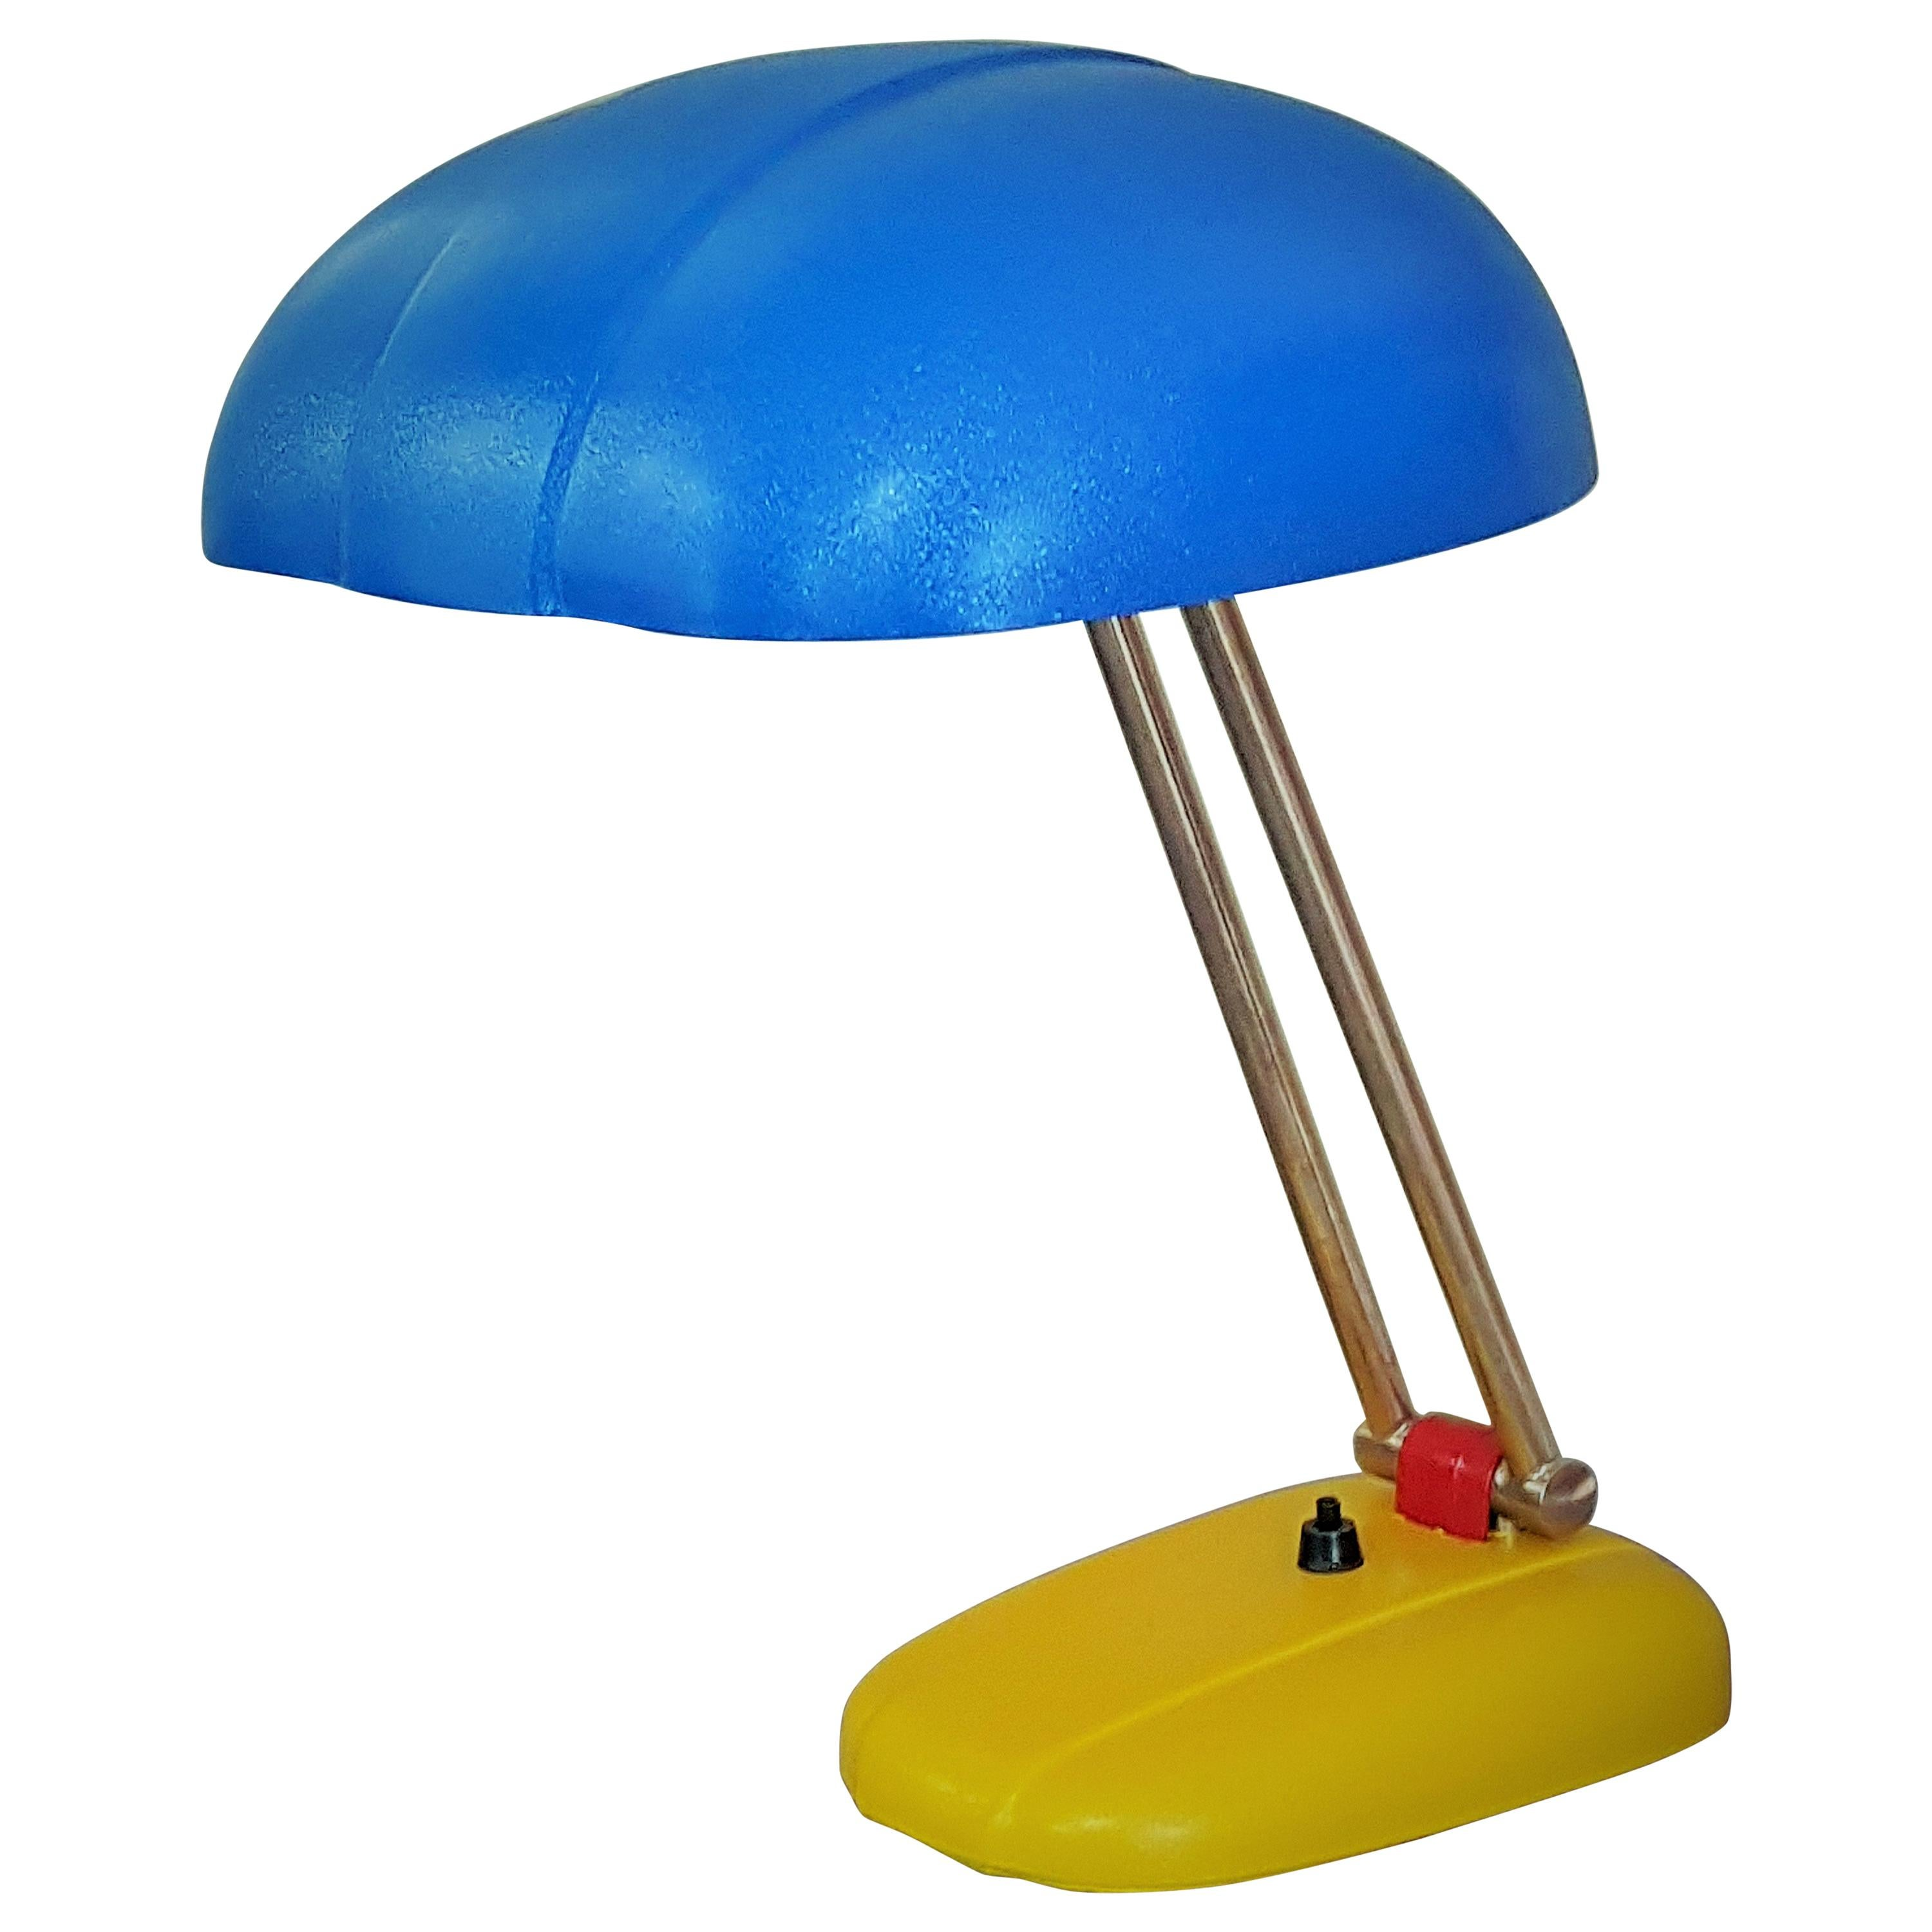 Art Deco Midcentury Swiss Table Lamp by S. Giedion for BAG Turgi, 1930s